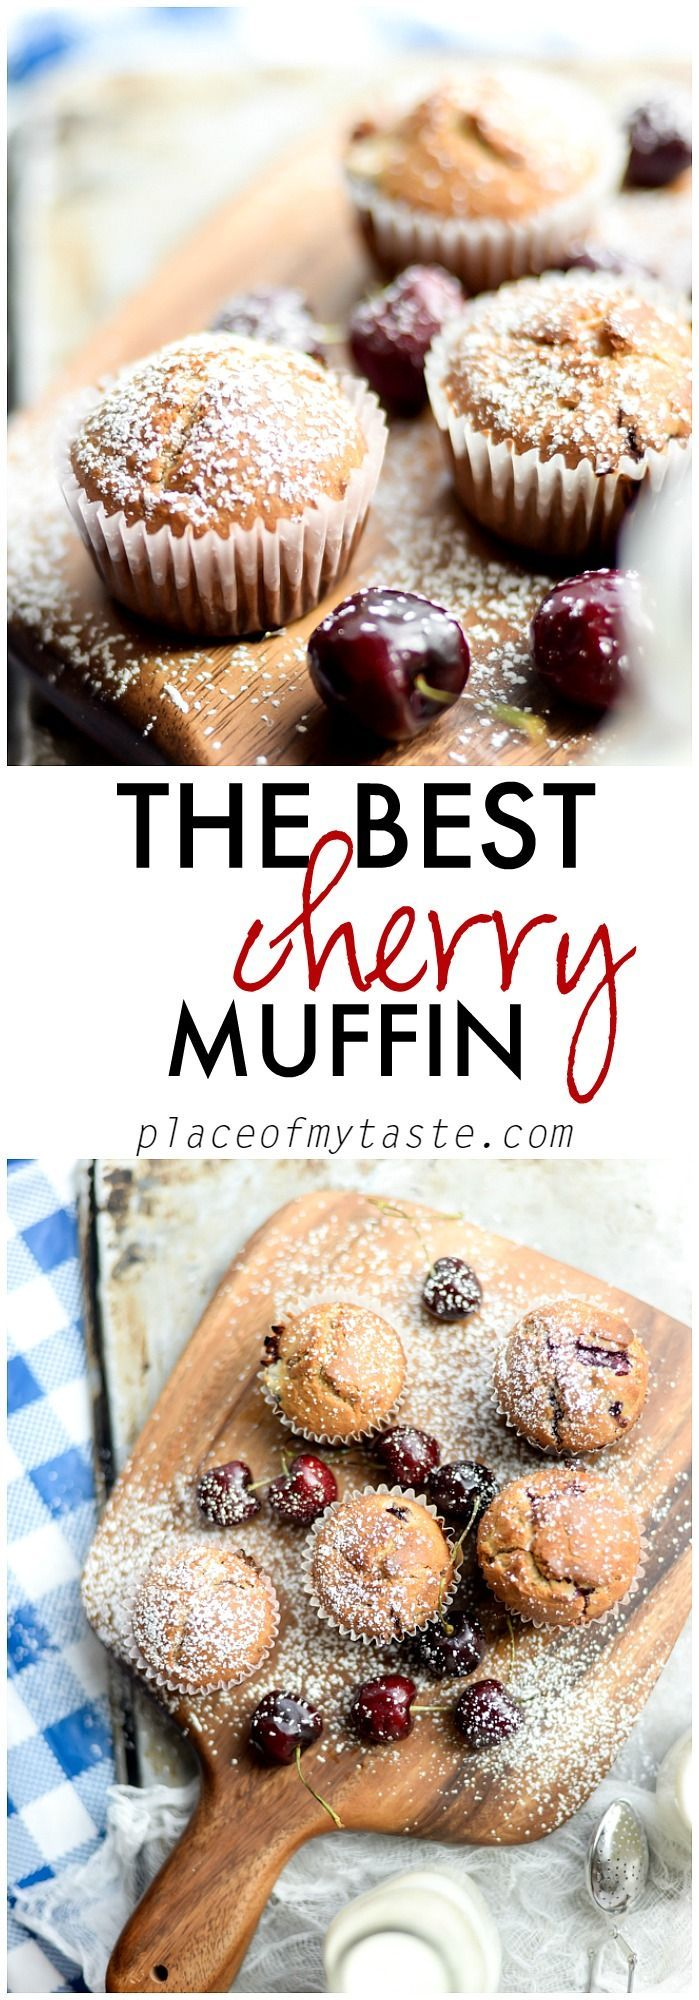 This is the best cherry muffin recipe! It's fluffy and not too sweet!